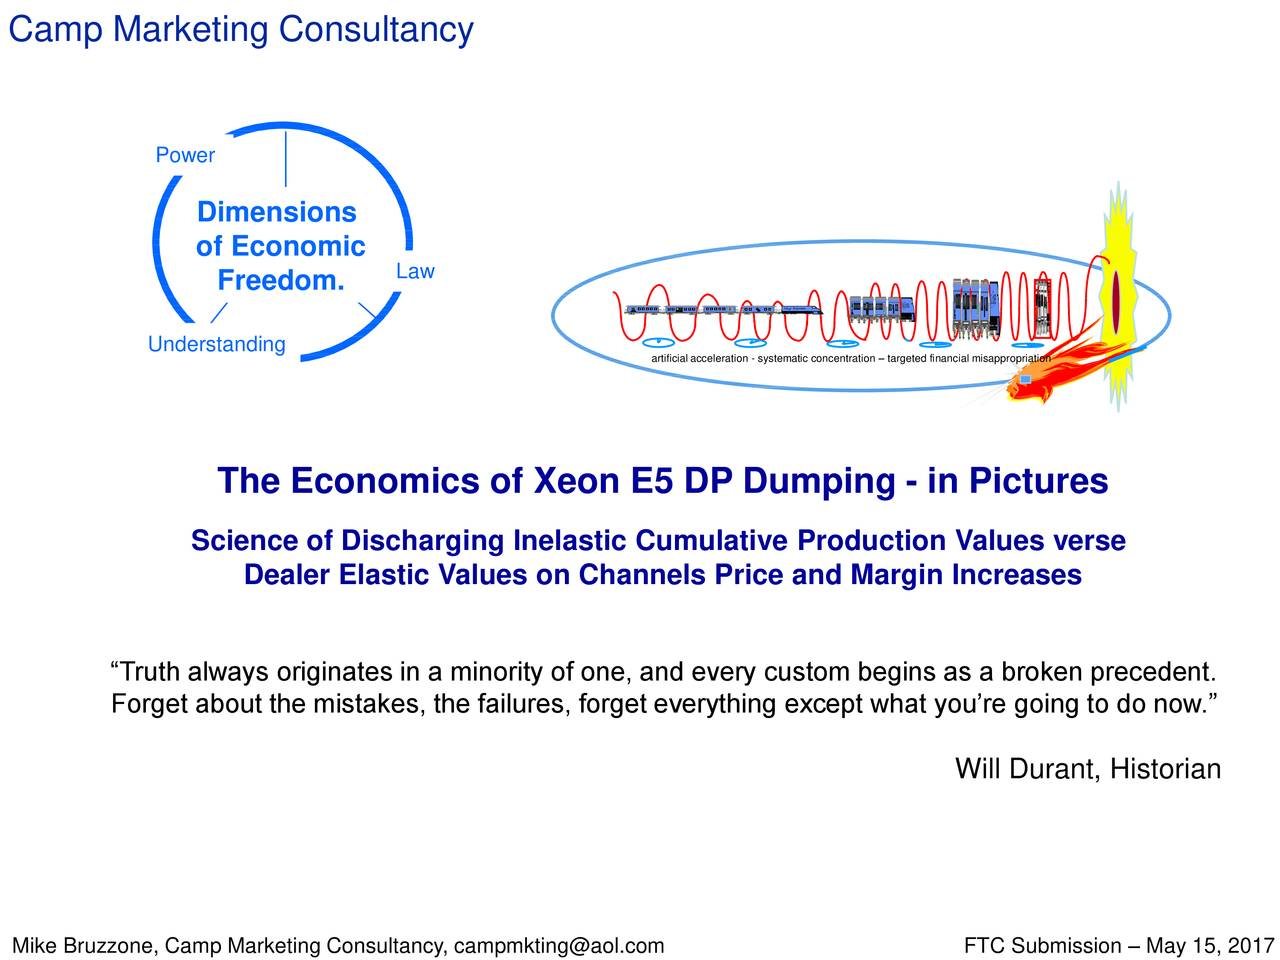 """Power Dimensions of Economic Freedom. Law ent l Expreset l Expressl Eepressxpress Understanding artificialacceleration - systematic concentration – targeted financial misappropriation The Economics of Xeon E5 DP Dumping - in Pictures Science of Discharging Inelastic Cumulative Production Values verse Dealer Elastic Values on Channels Price and Margin Increases """"Truth always originates in a minority of one, and every custom begins as a broken precedent. Forget about the mistakes, the failures, forget everything except what you're going to do now."""" Will Durant, Historian"""